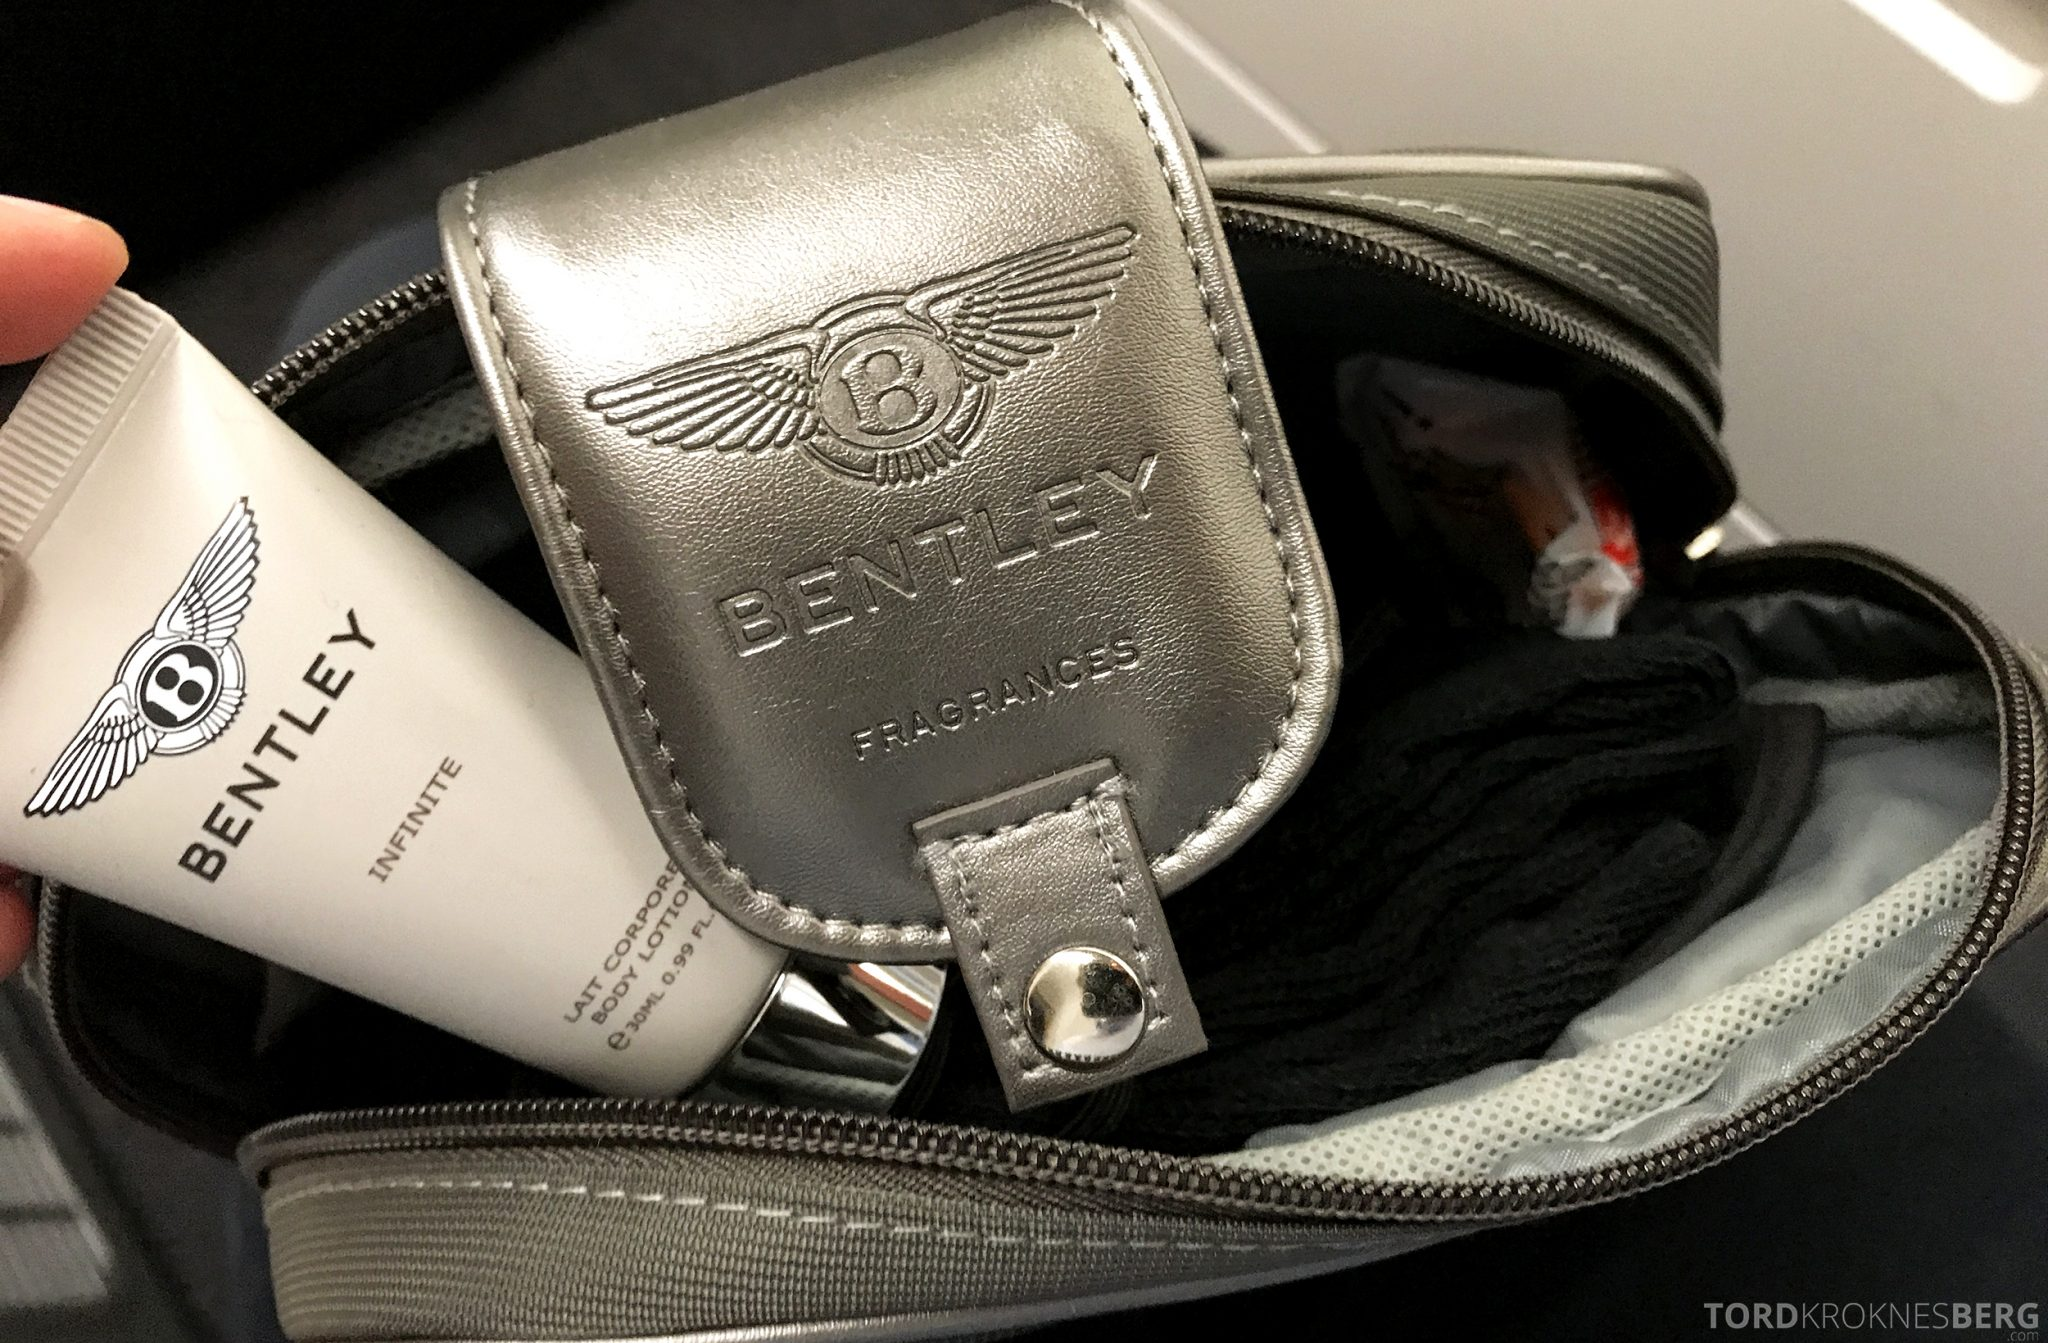 Turkish Airlines Business Class Jakarta Istanbul amenity kit